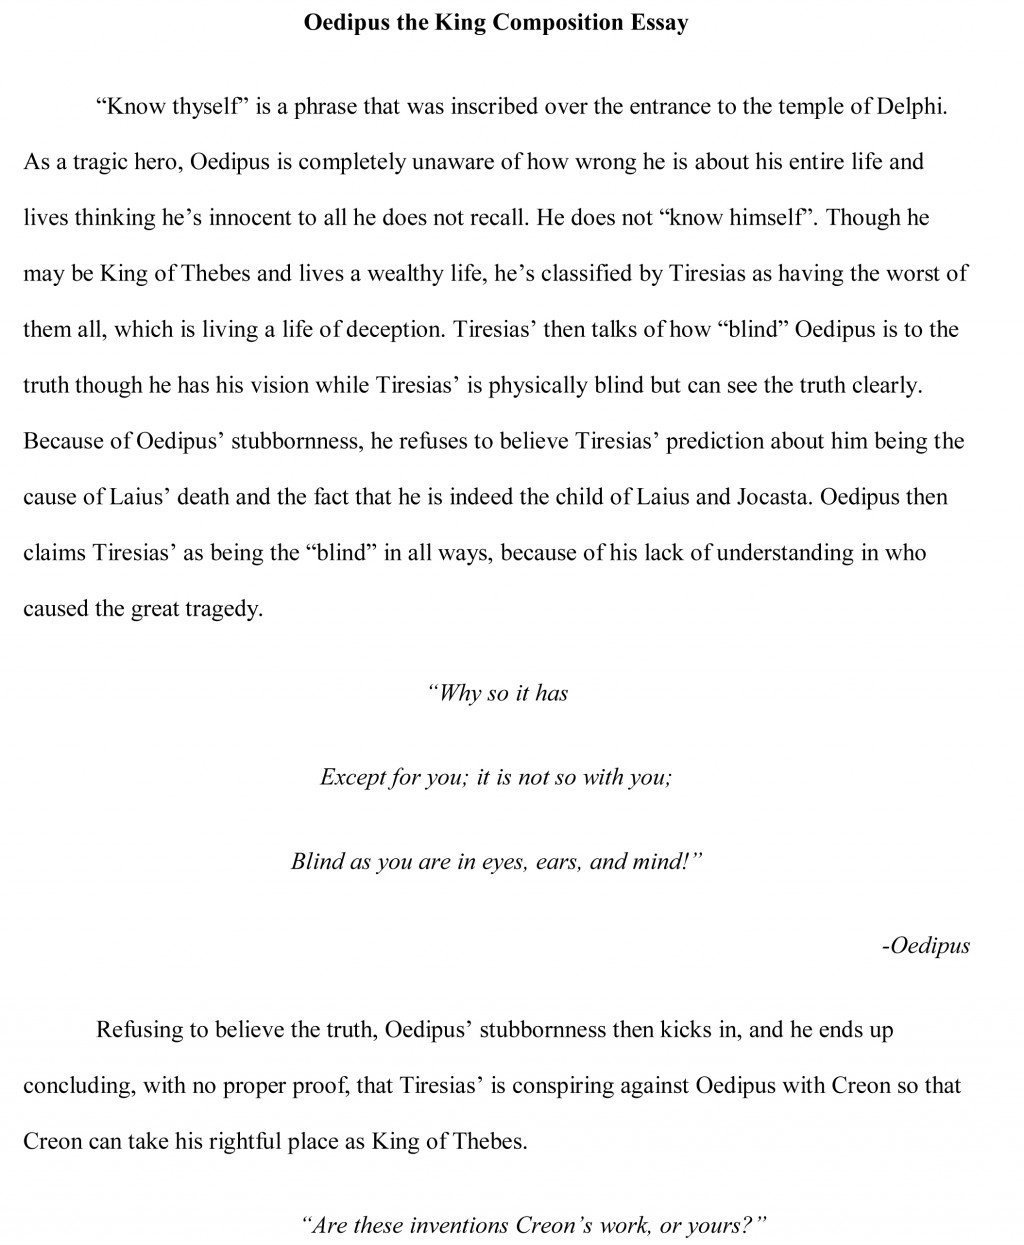 011 Oedipus Essay Free Sample Good Hooks For Essayss Excellent Essays Examples College Of Expository Large